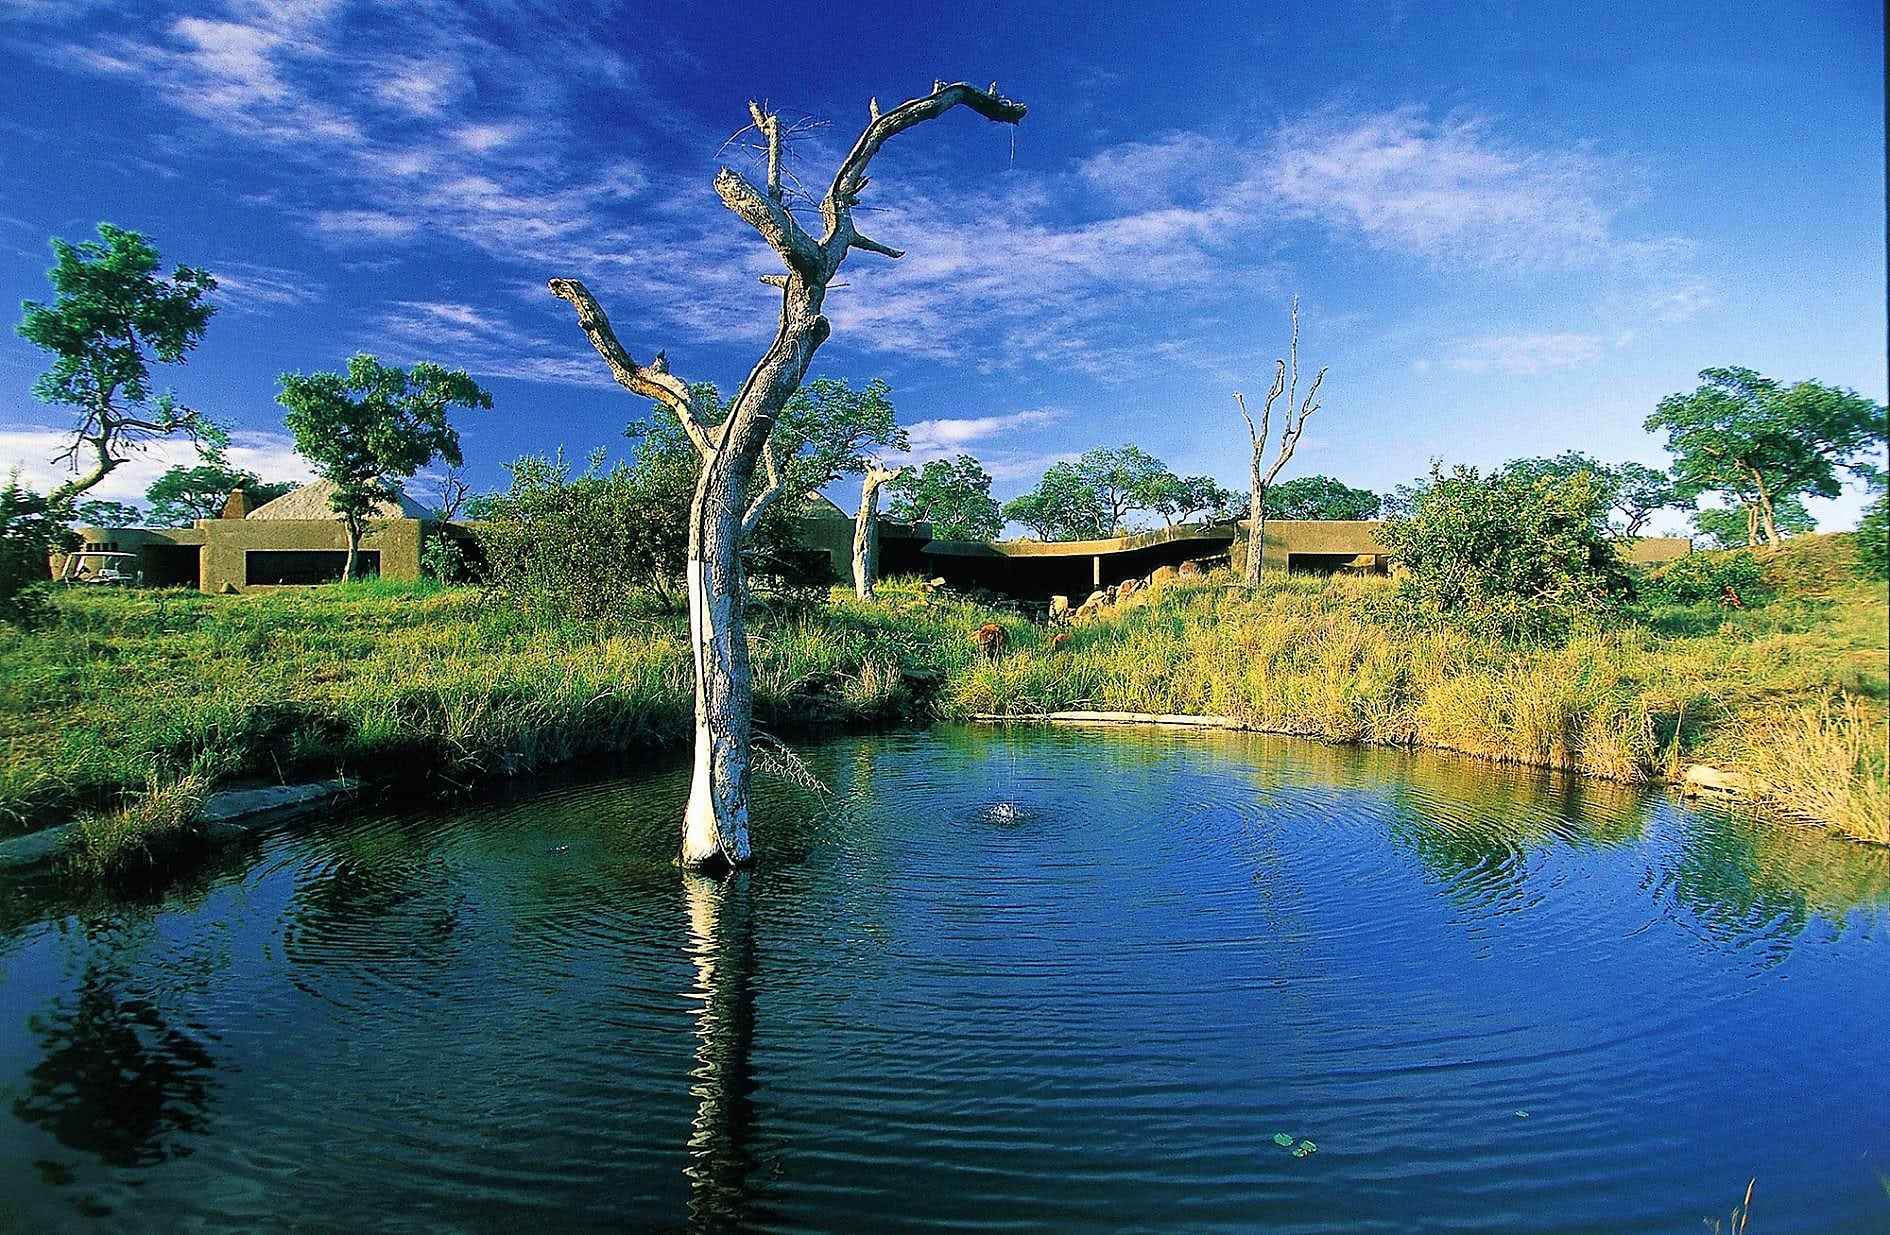 Sabi Sabi Earth Lodge and waterhole